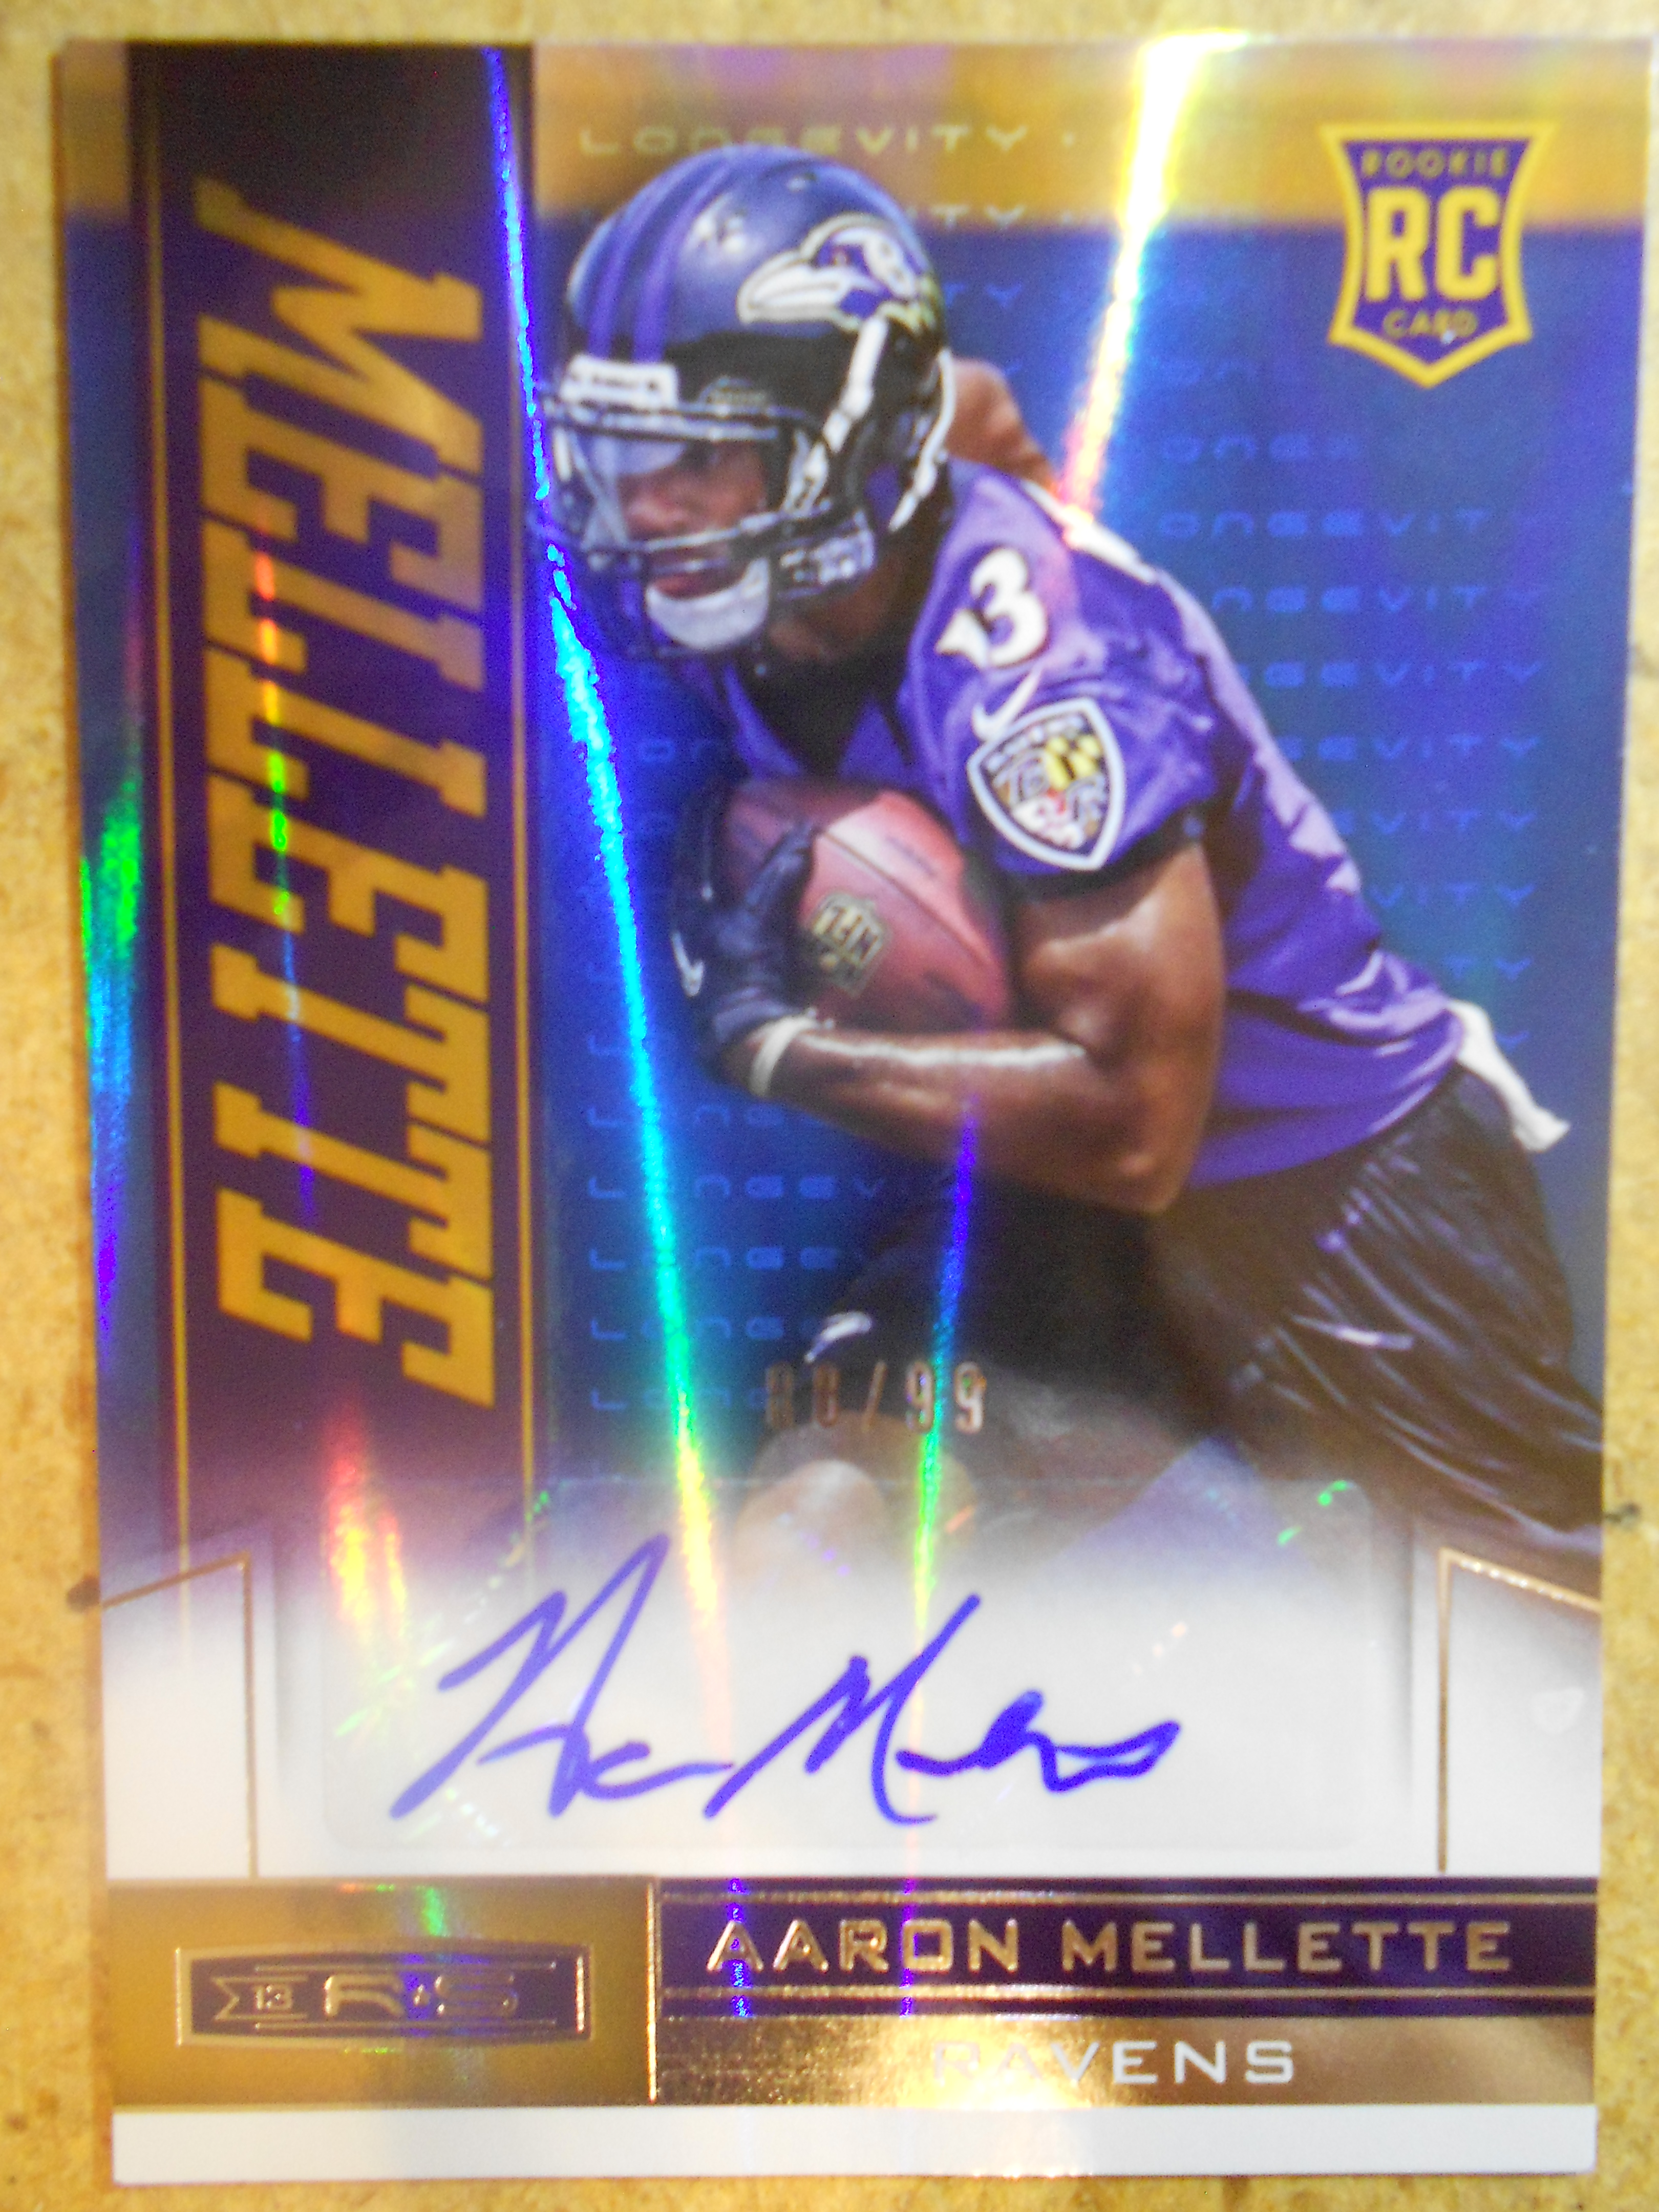 2013 Rookies and Stars Rookie Autographs Longevity Holofoil #102 Aaron Mellette